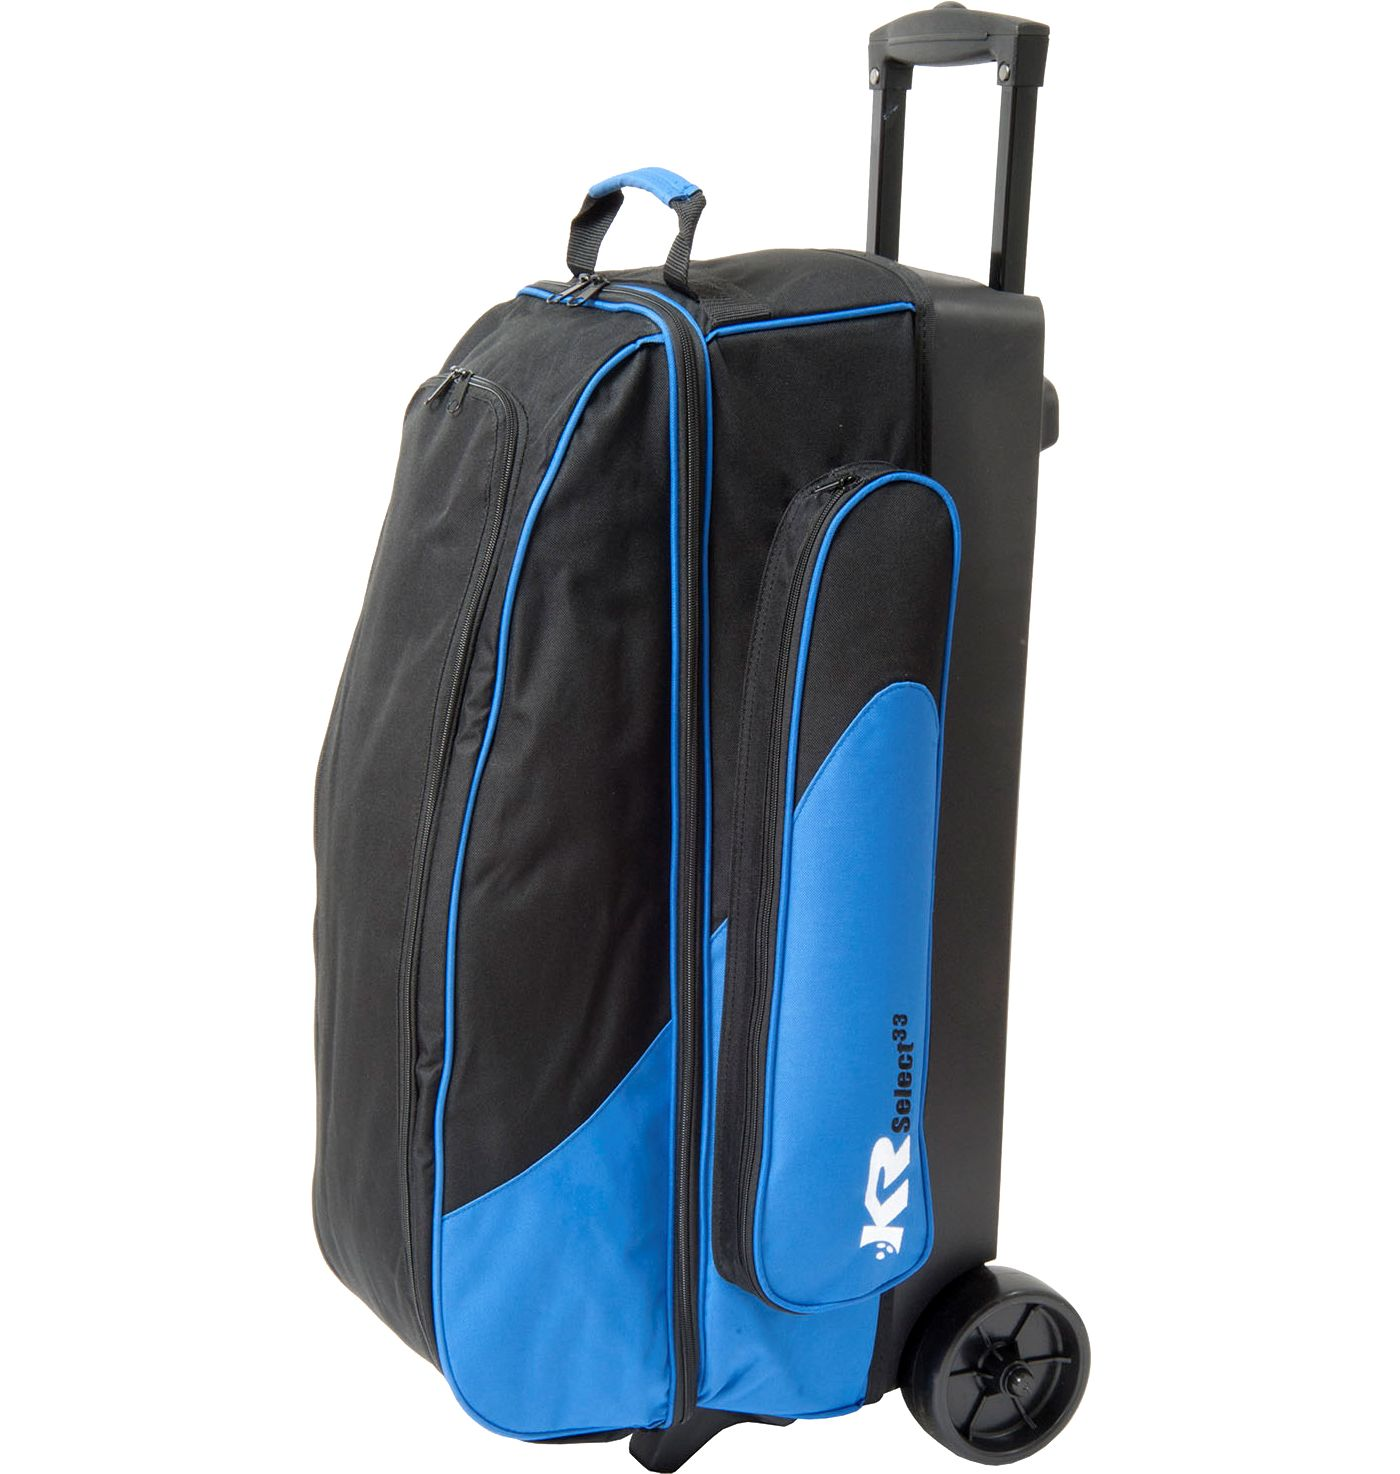 KR Strikeforce KR Select Triple Roller Bowling Bag